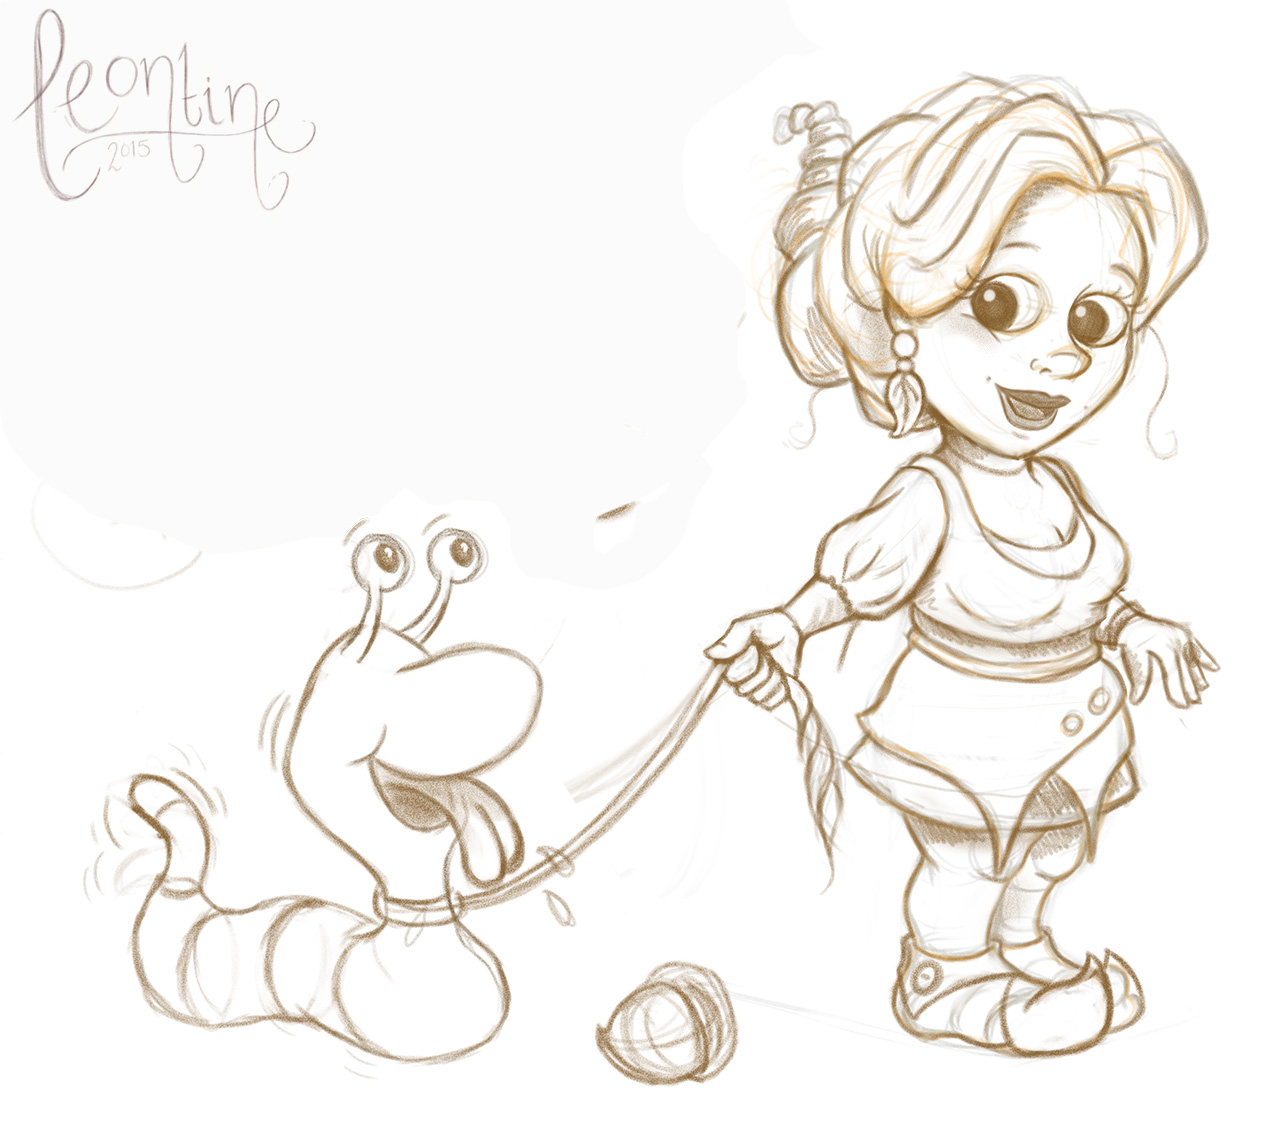 leontine gaasenbeek walking the snail sketch 2.jpg